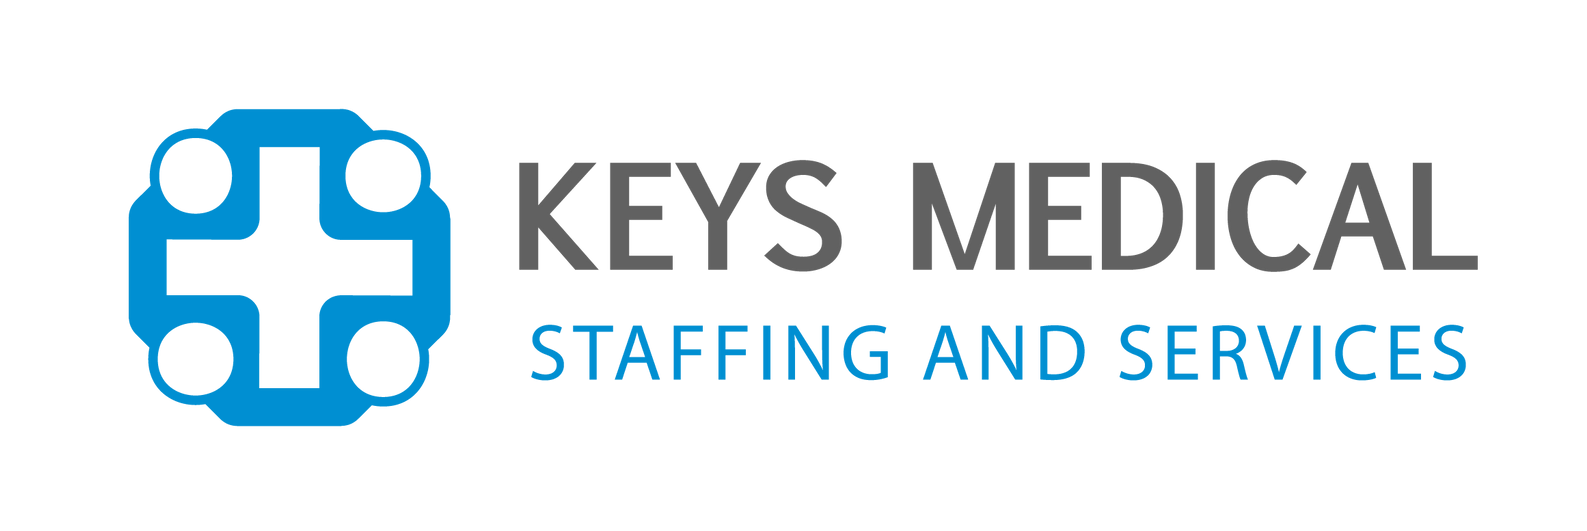 KeysMedical_logo_Horizontal.png